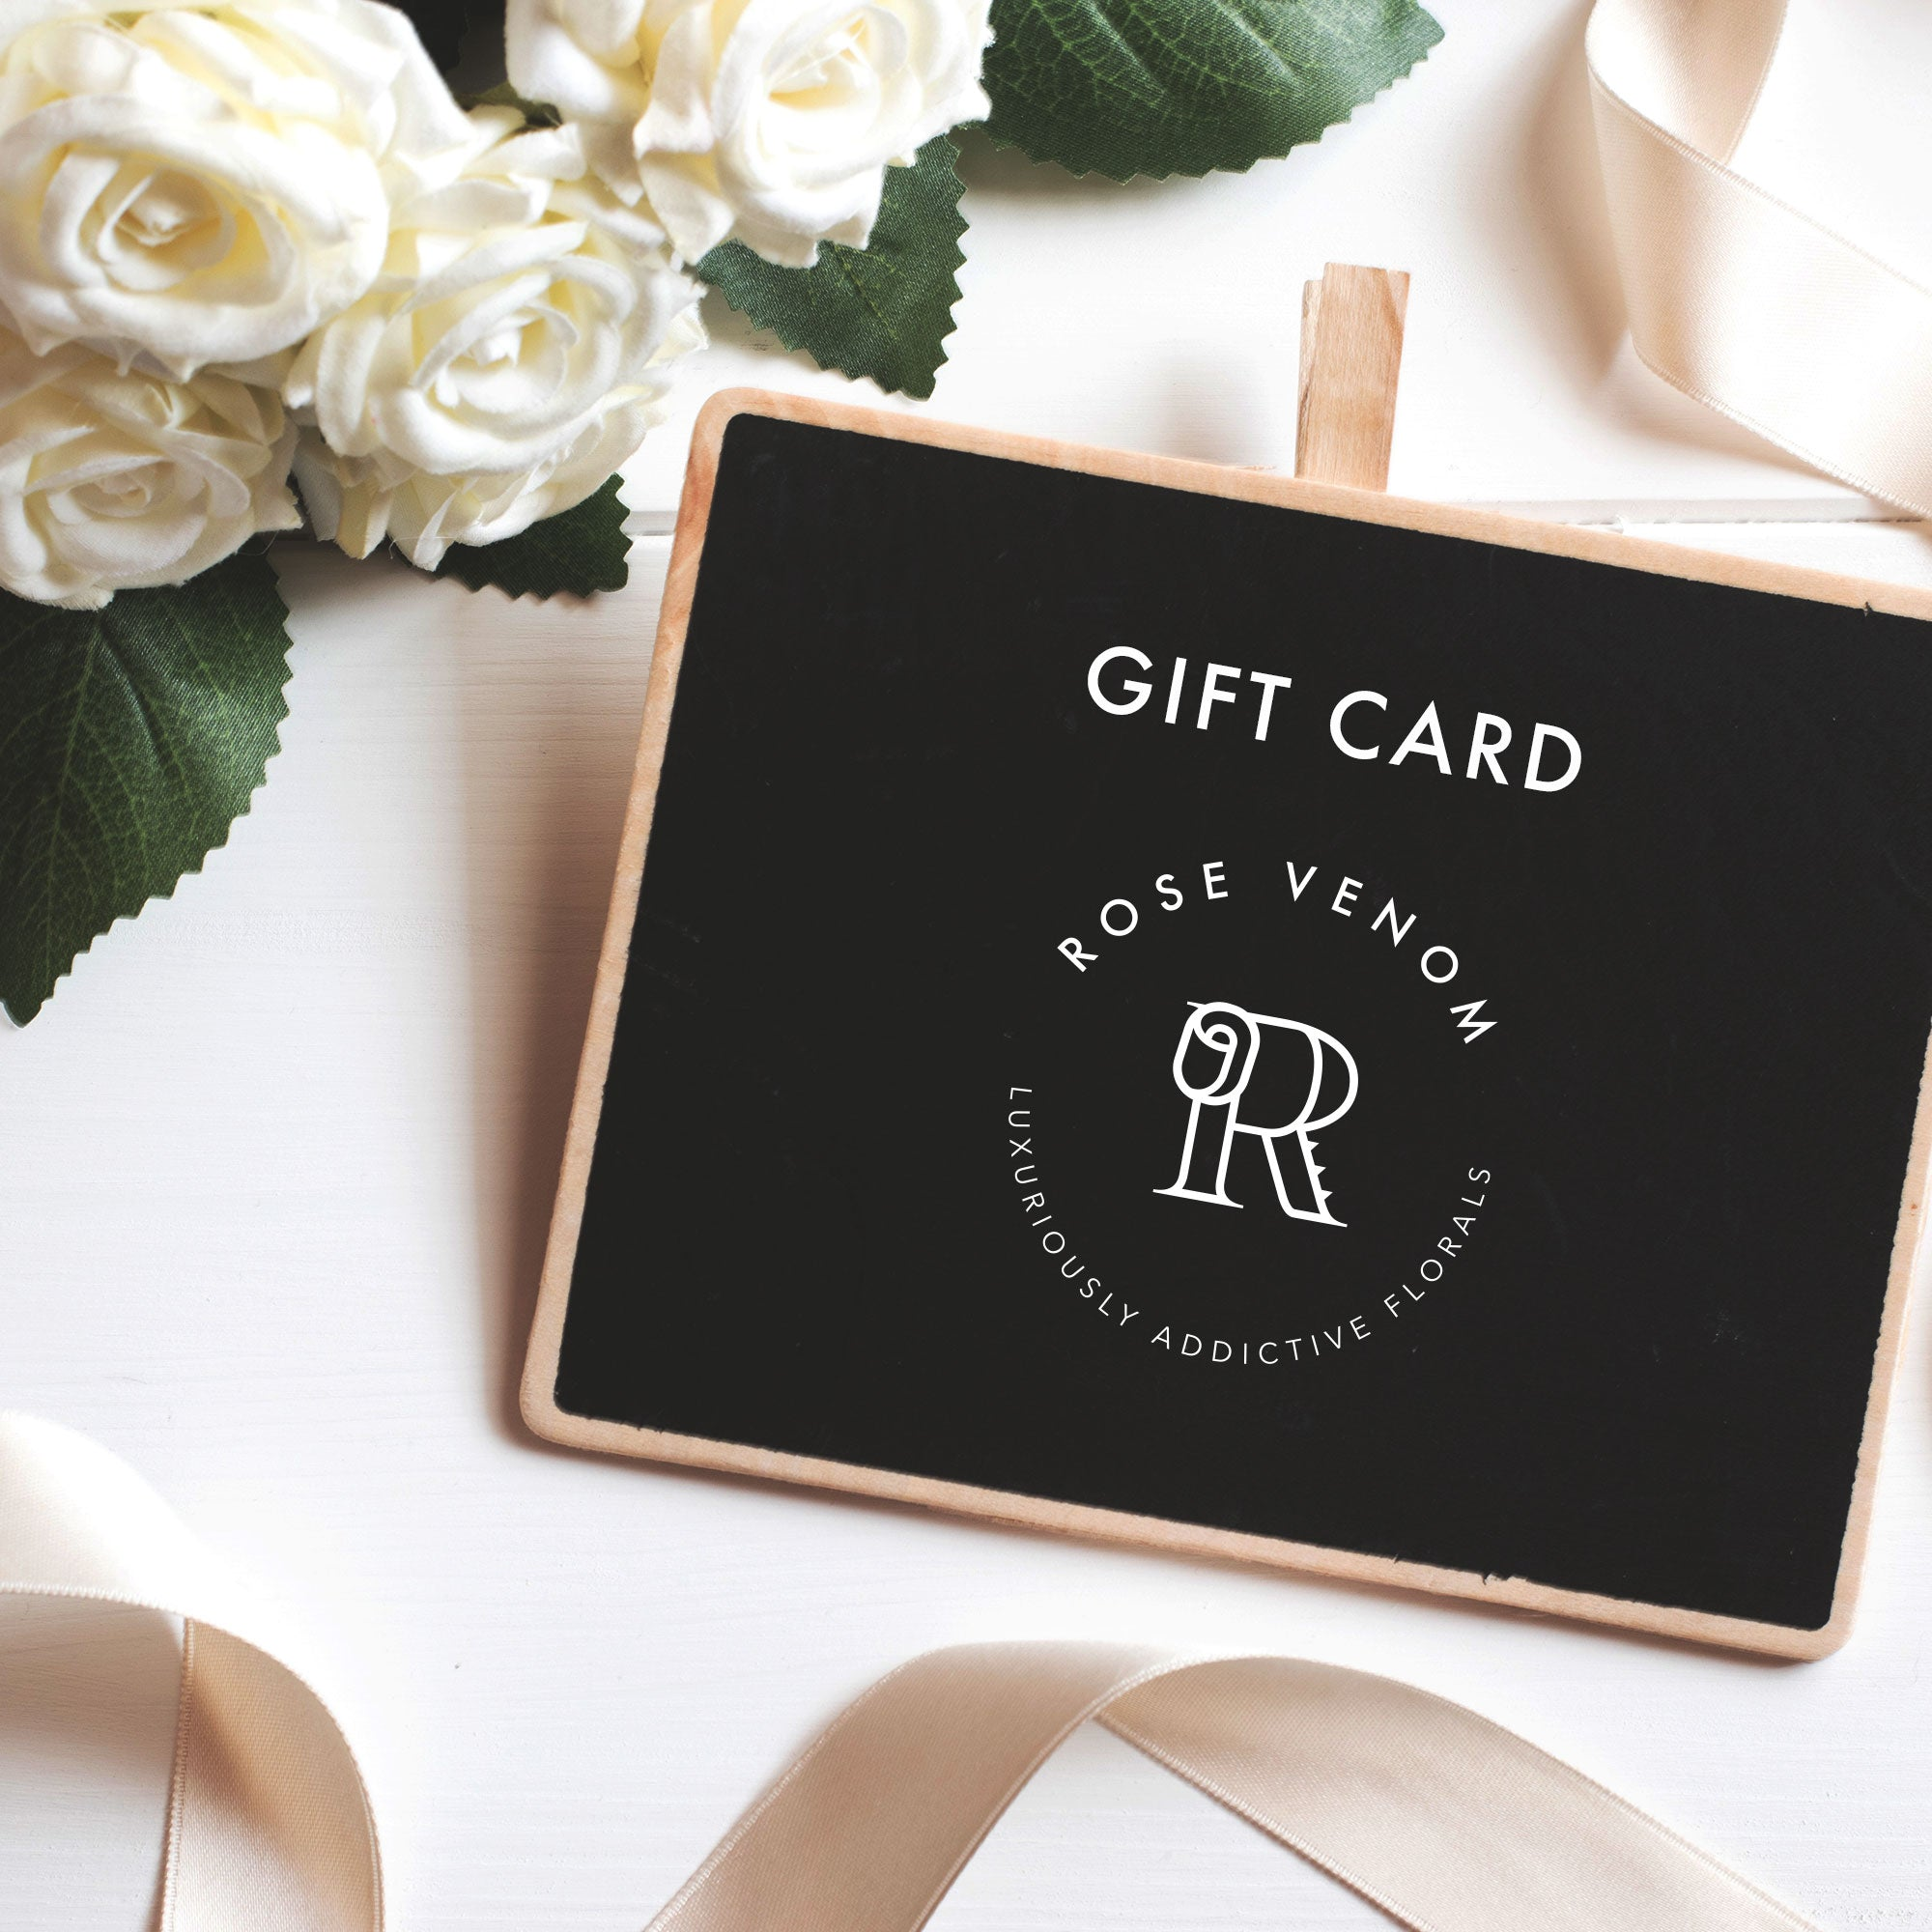 Rose Venom Gift Card